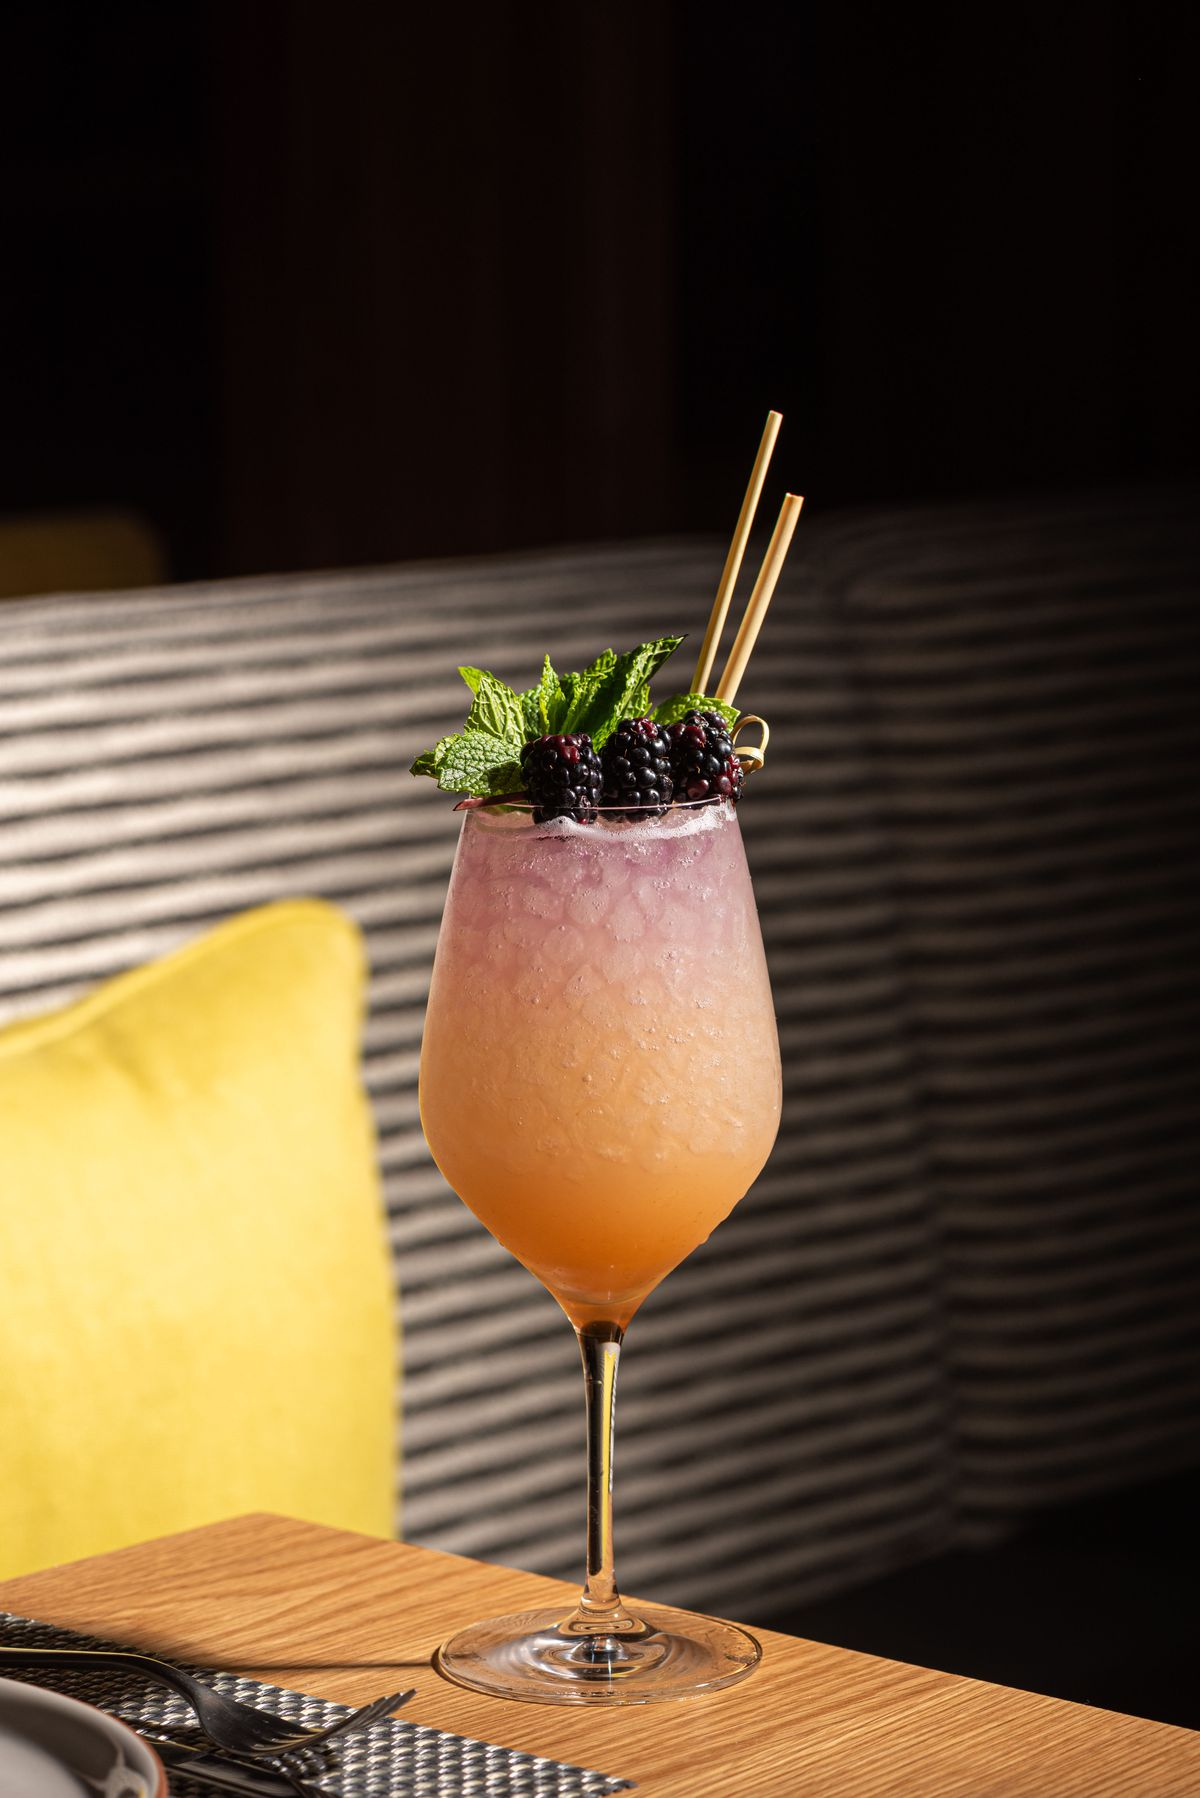 A tall glass of light pink cocktail with crushed ice.